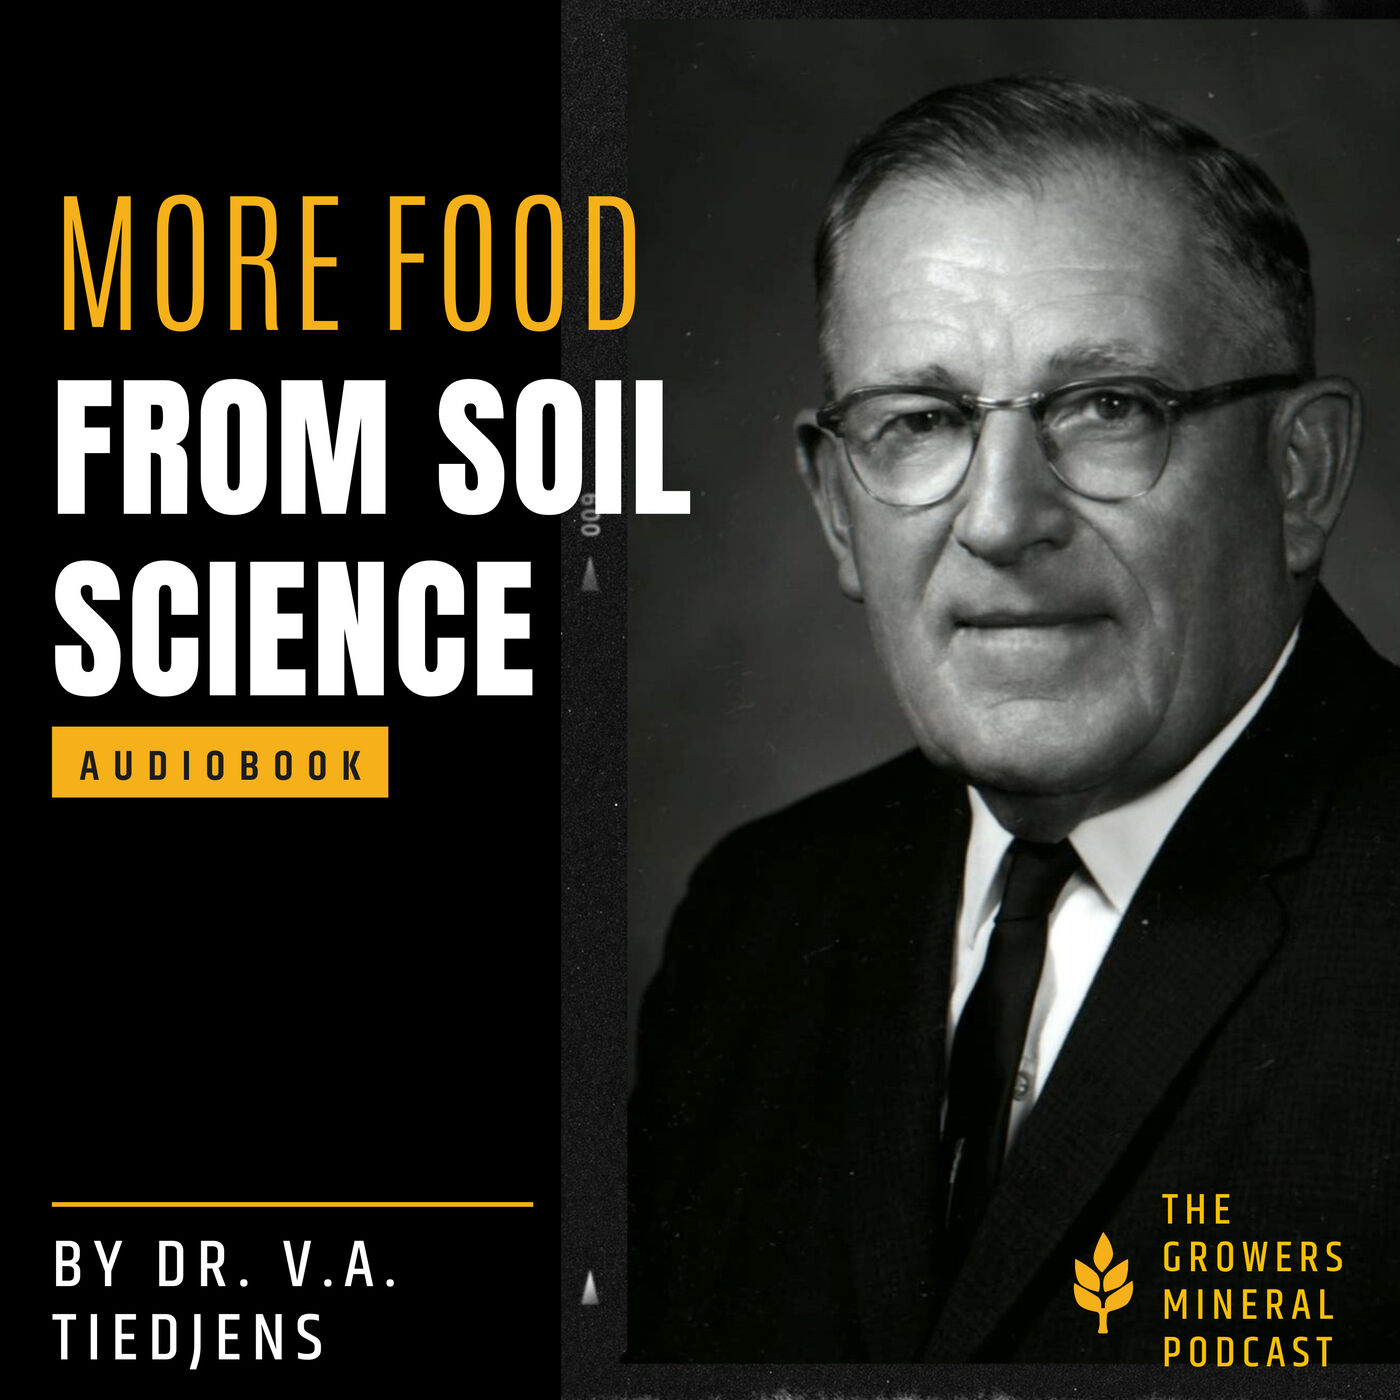 More Food from Soil Science Audiobook Ch. 7 - Our Commercial Fertilizer Research Program Is Not Tenable